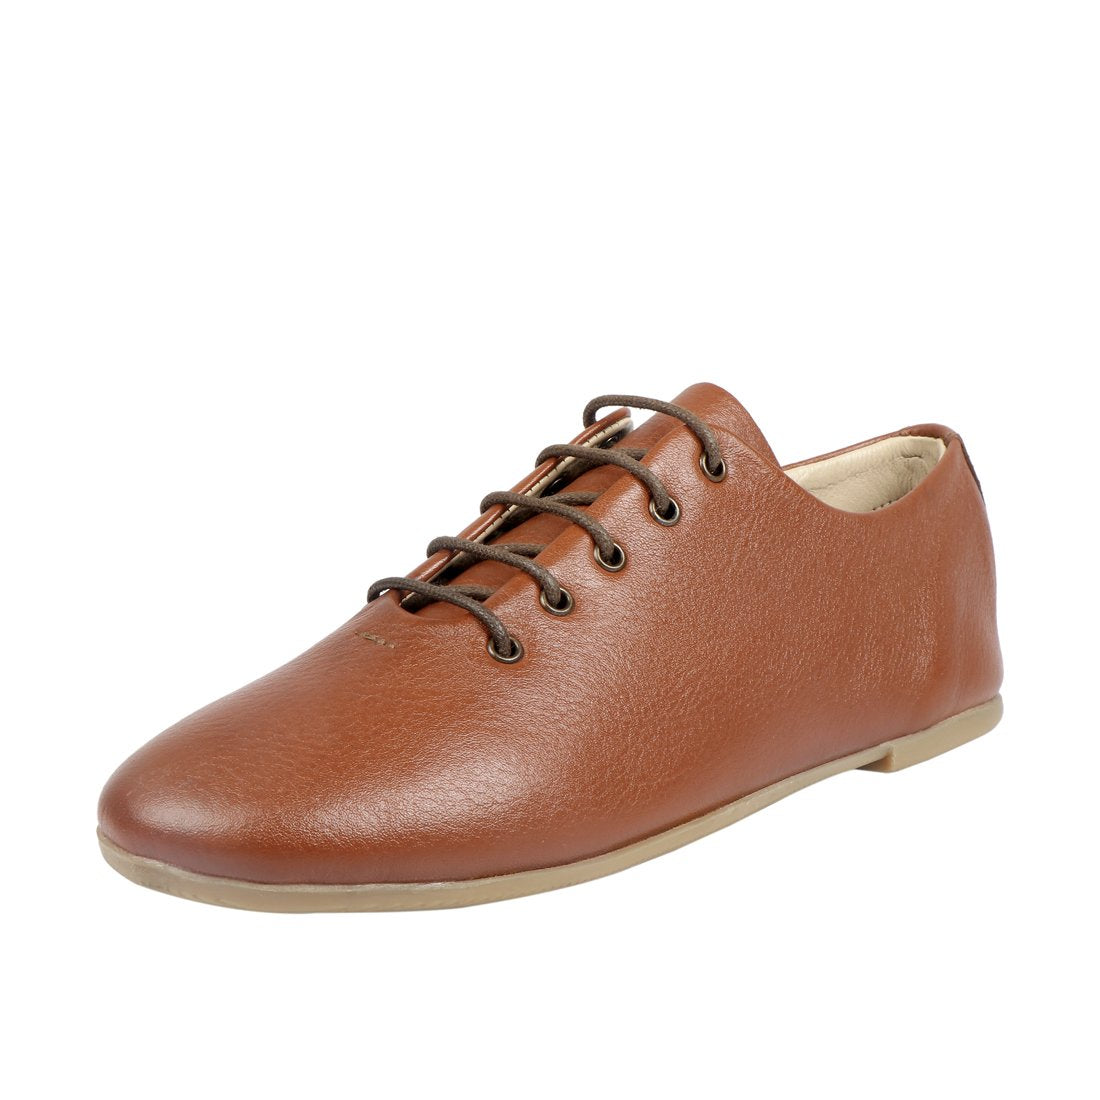 TWIGGY WOMENS DERBY SHOES